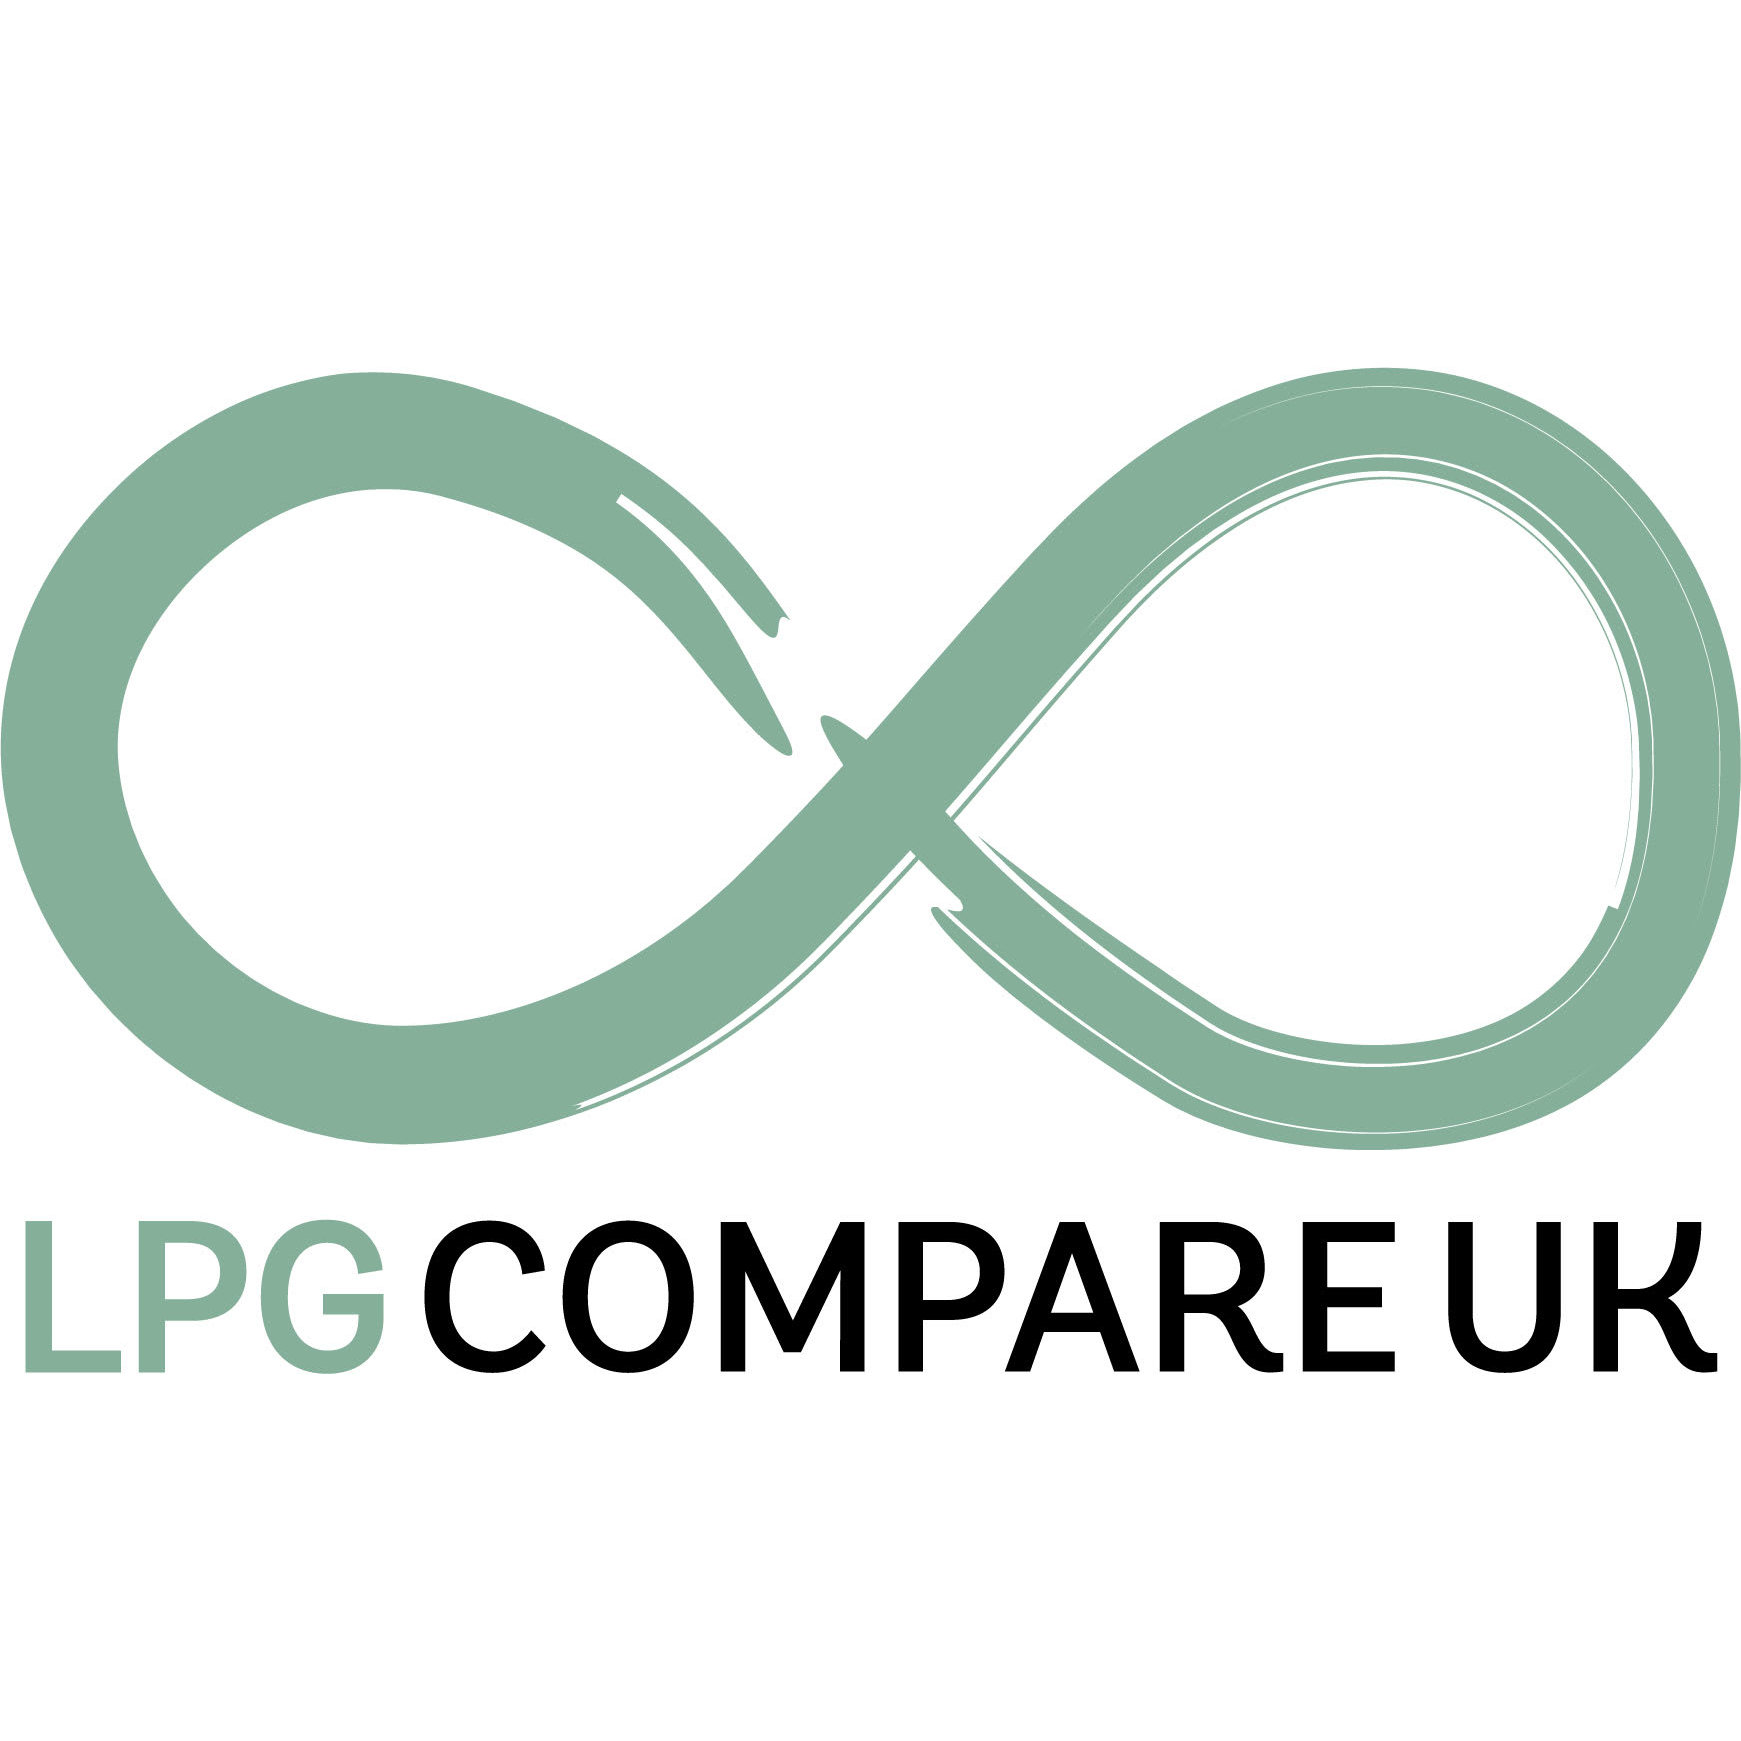 LPG Compare UK - Northwich, Cheshire CW9 5NB - 01606 631155 | ShowMeLocal.com